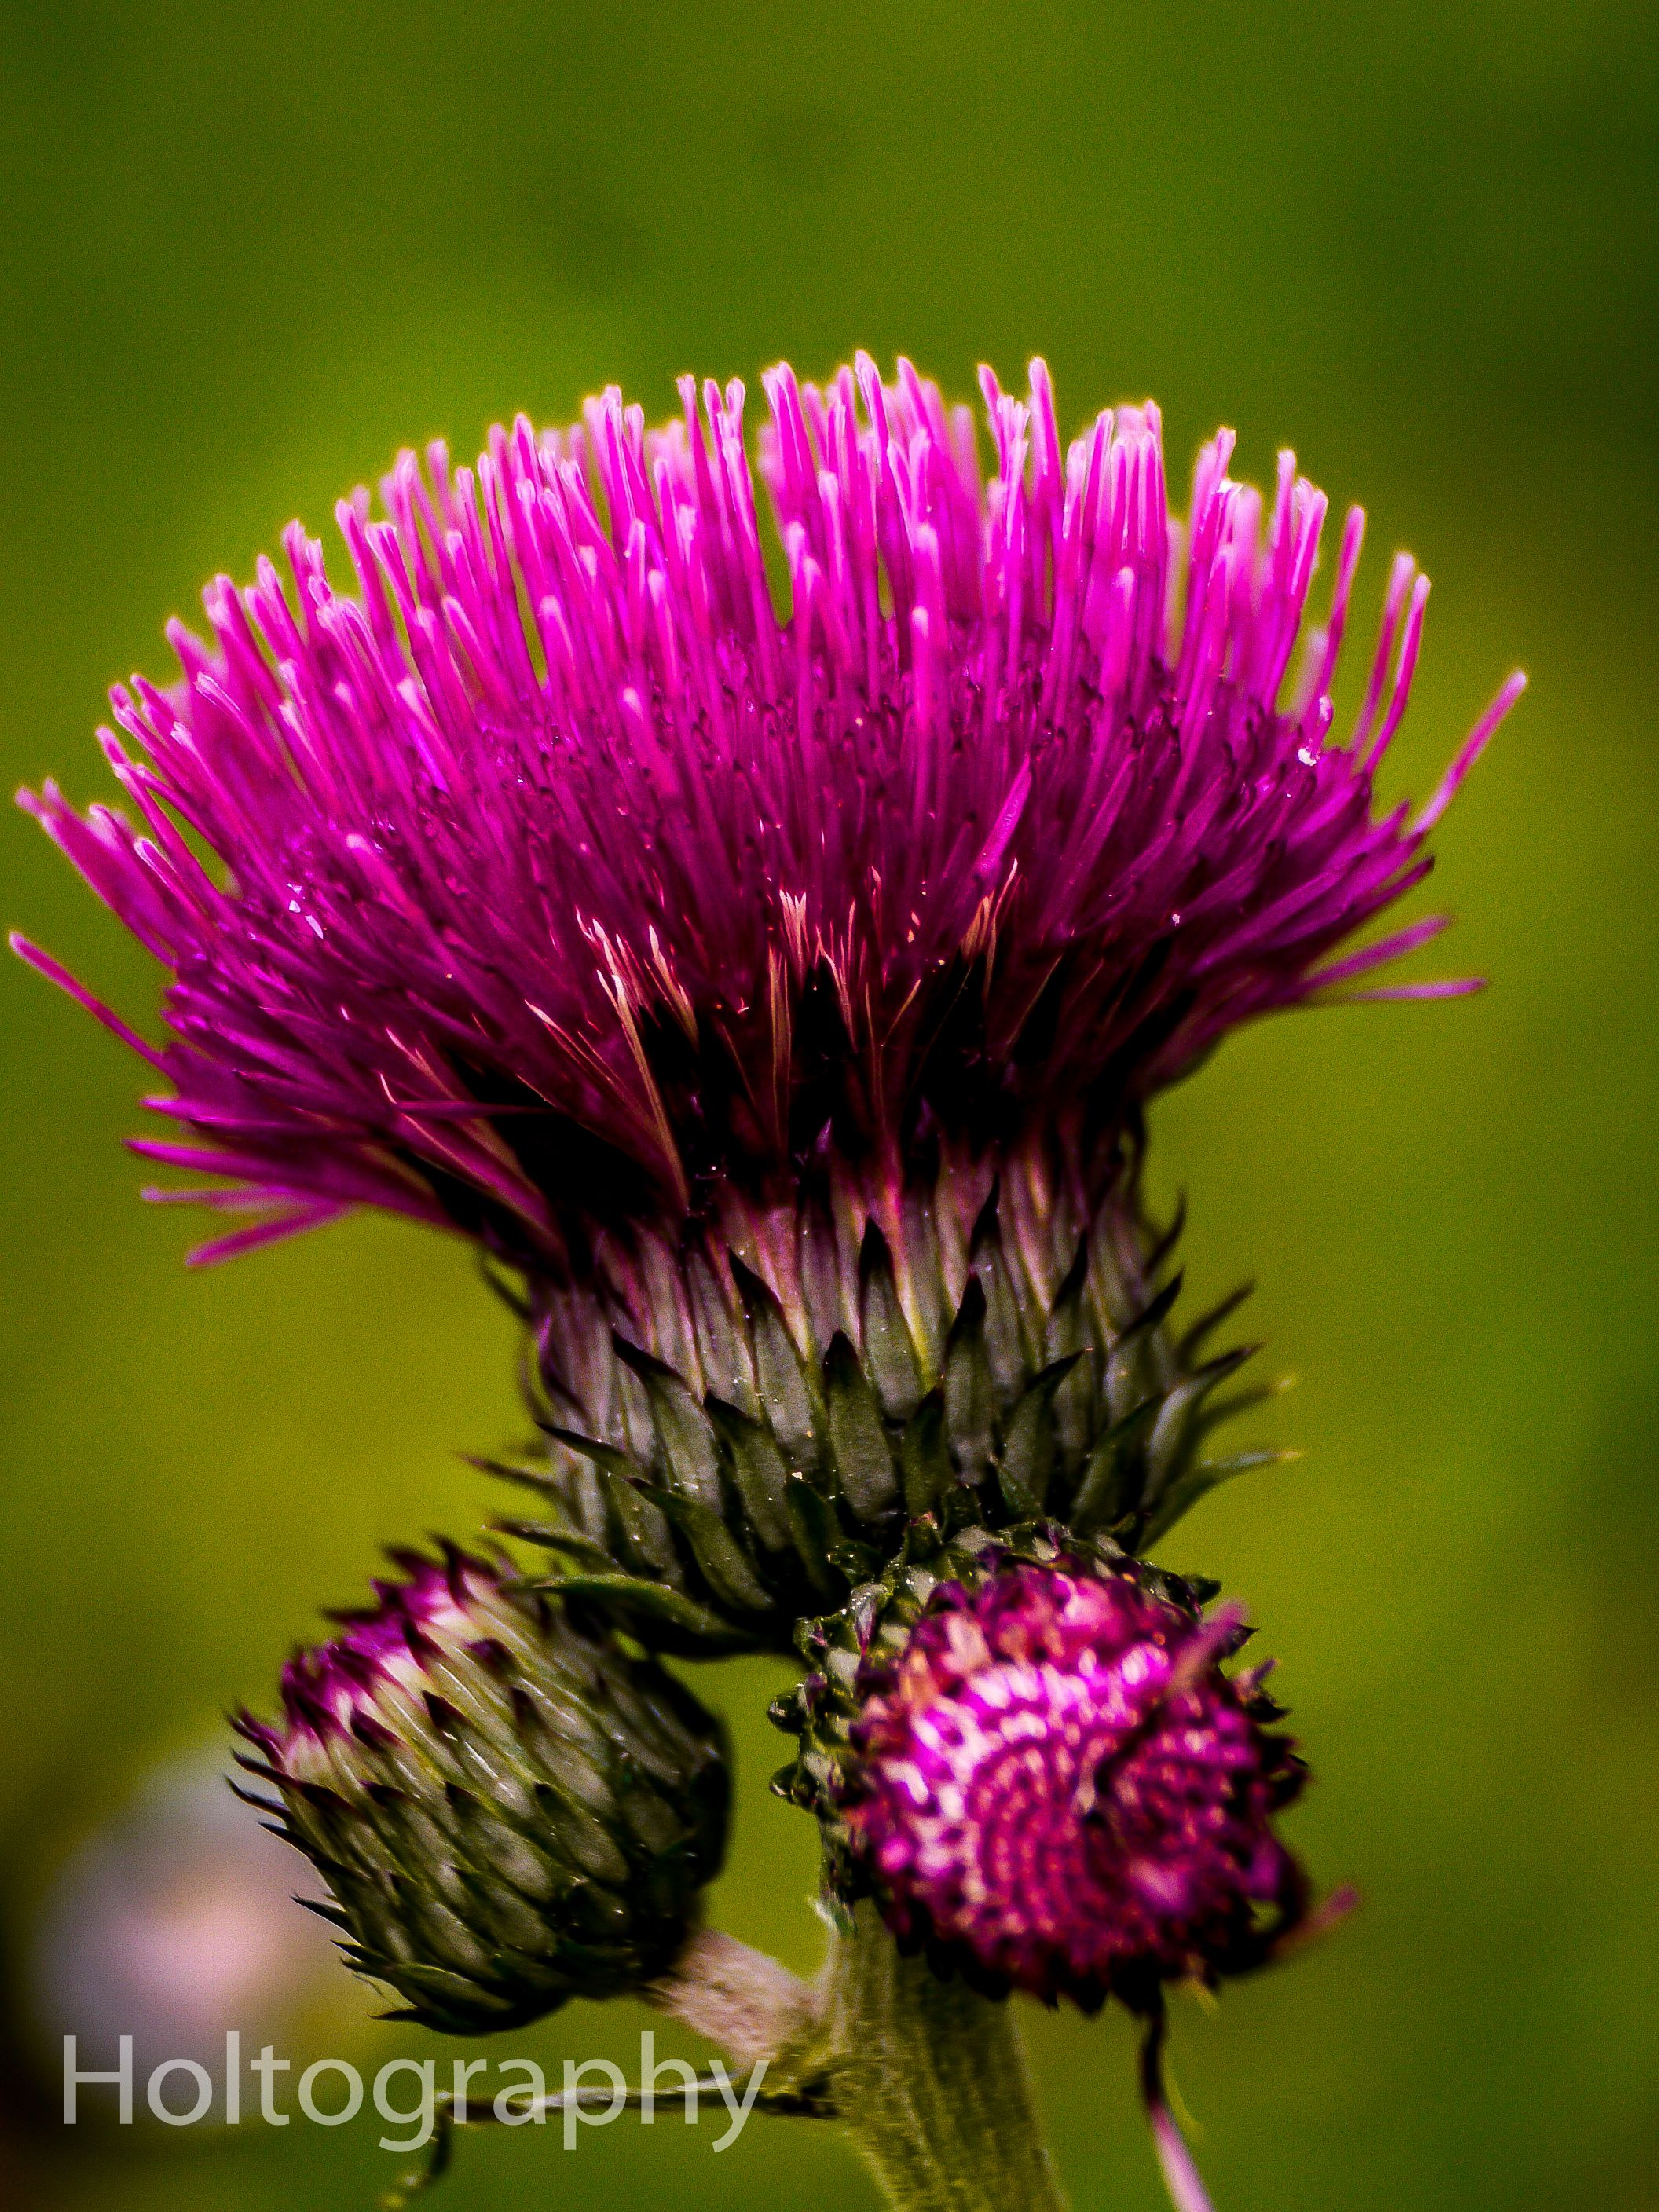 Flower Of Scotland In Spirit Of Robbie Burns I Thought I Would Post